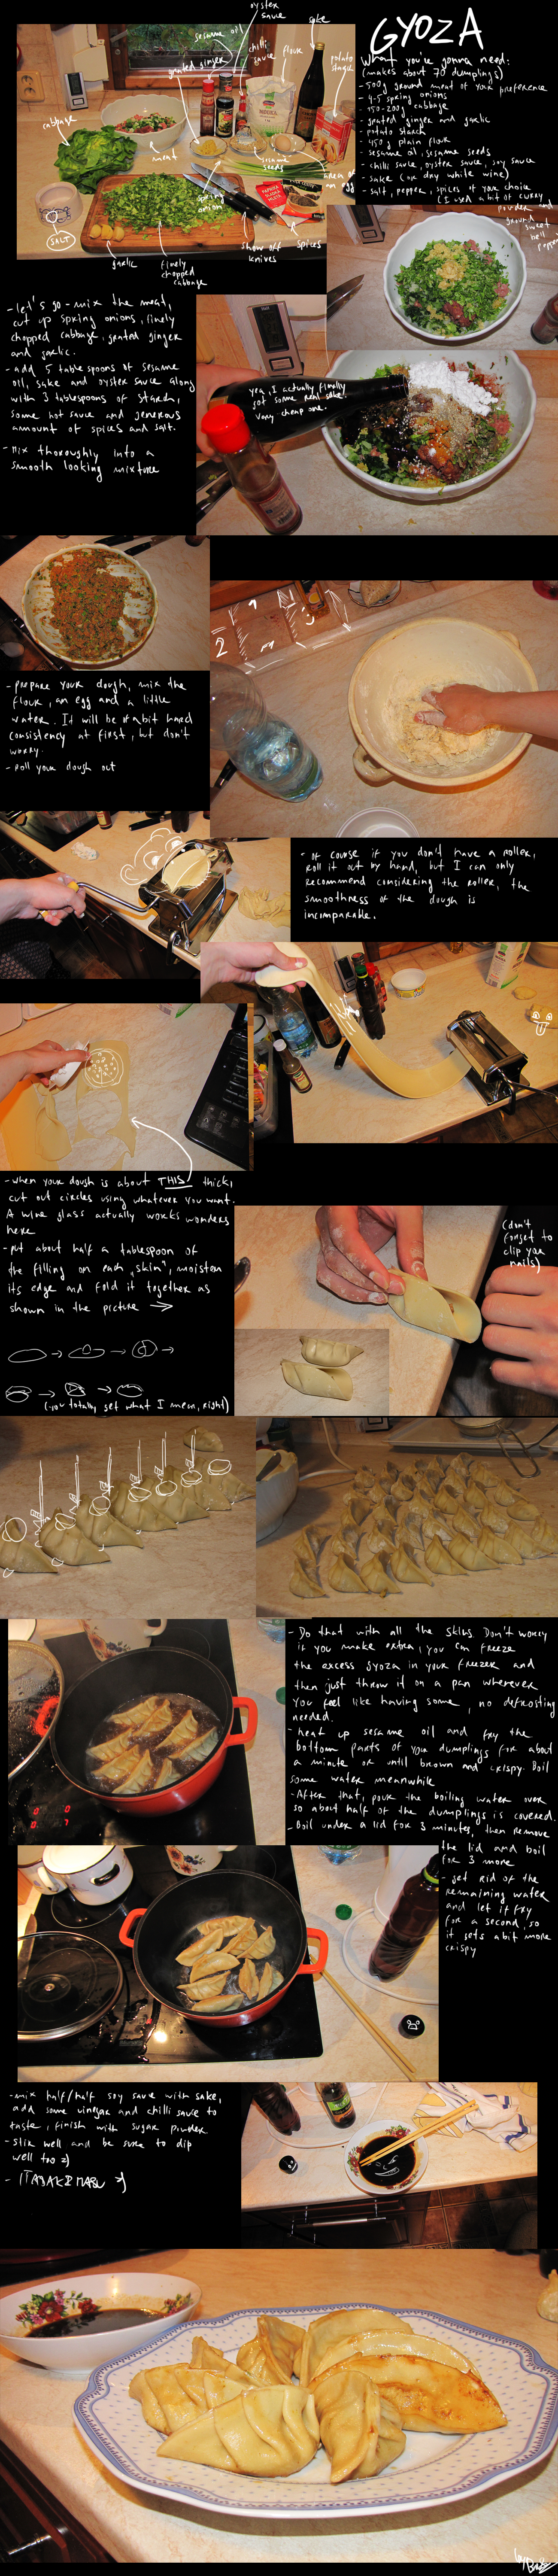 How to make gyoza by BrocX